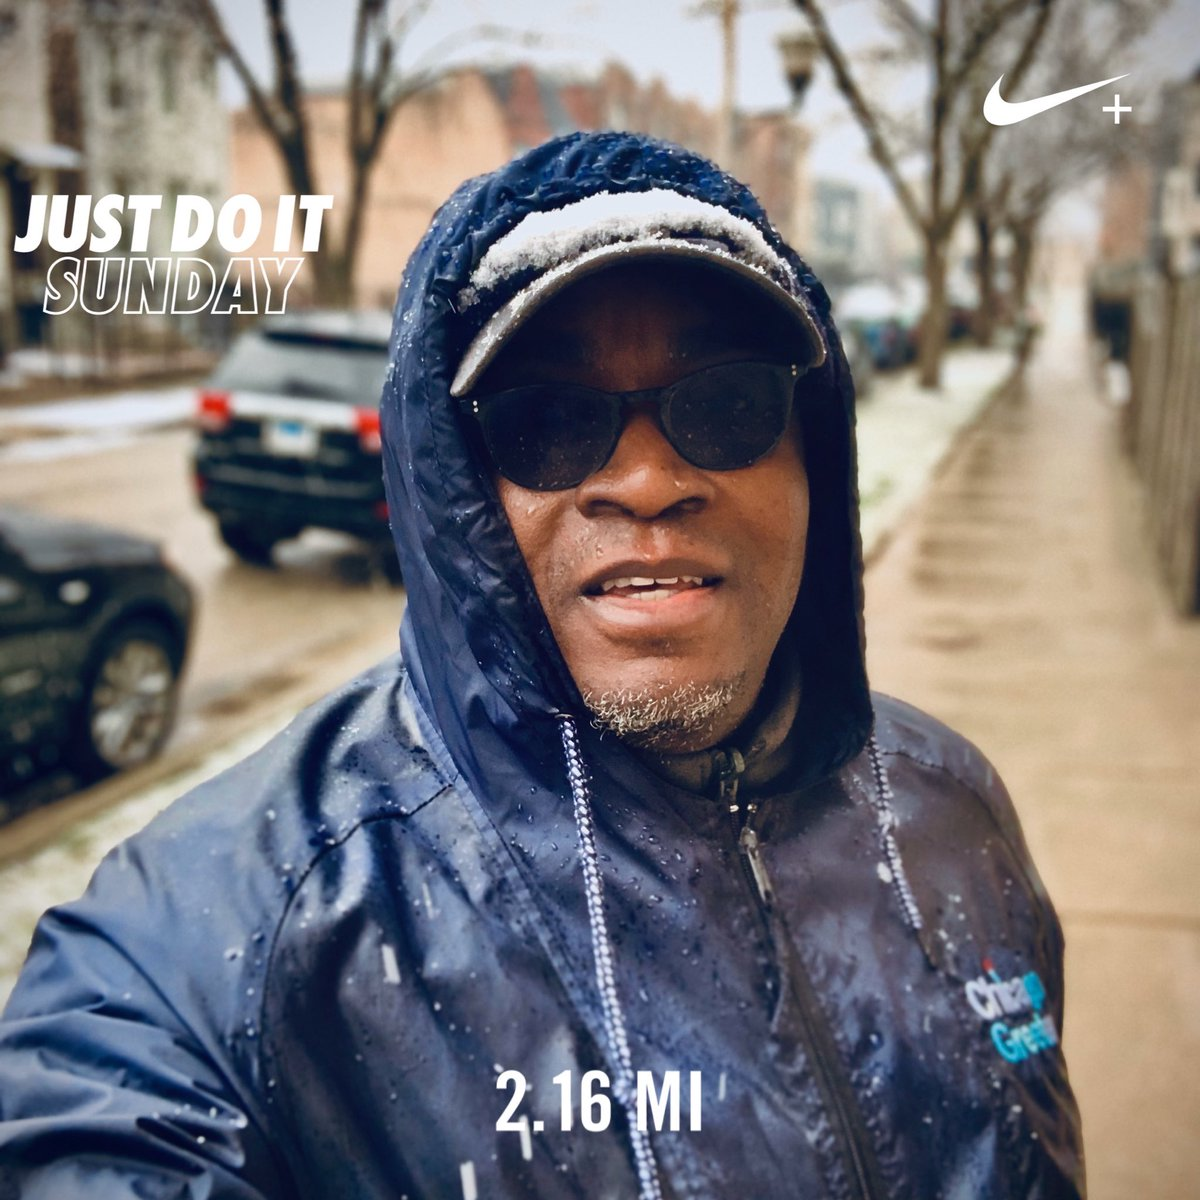 When did I become that guy? #MyQuarantineInJustSixWords   #NikeRunClub #FourMilesToFitness #BlackMenRun #SigmasRunpic.twitter.com/34eIHMAtgZ